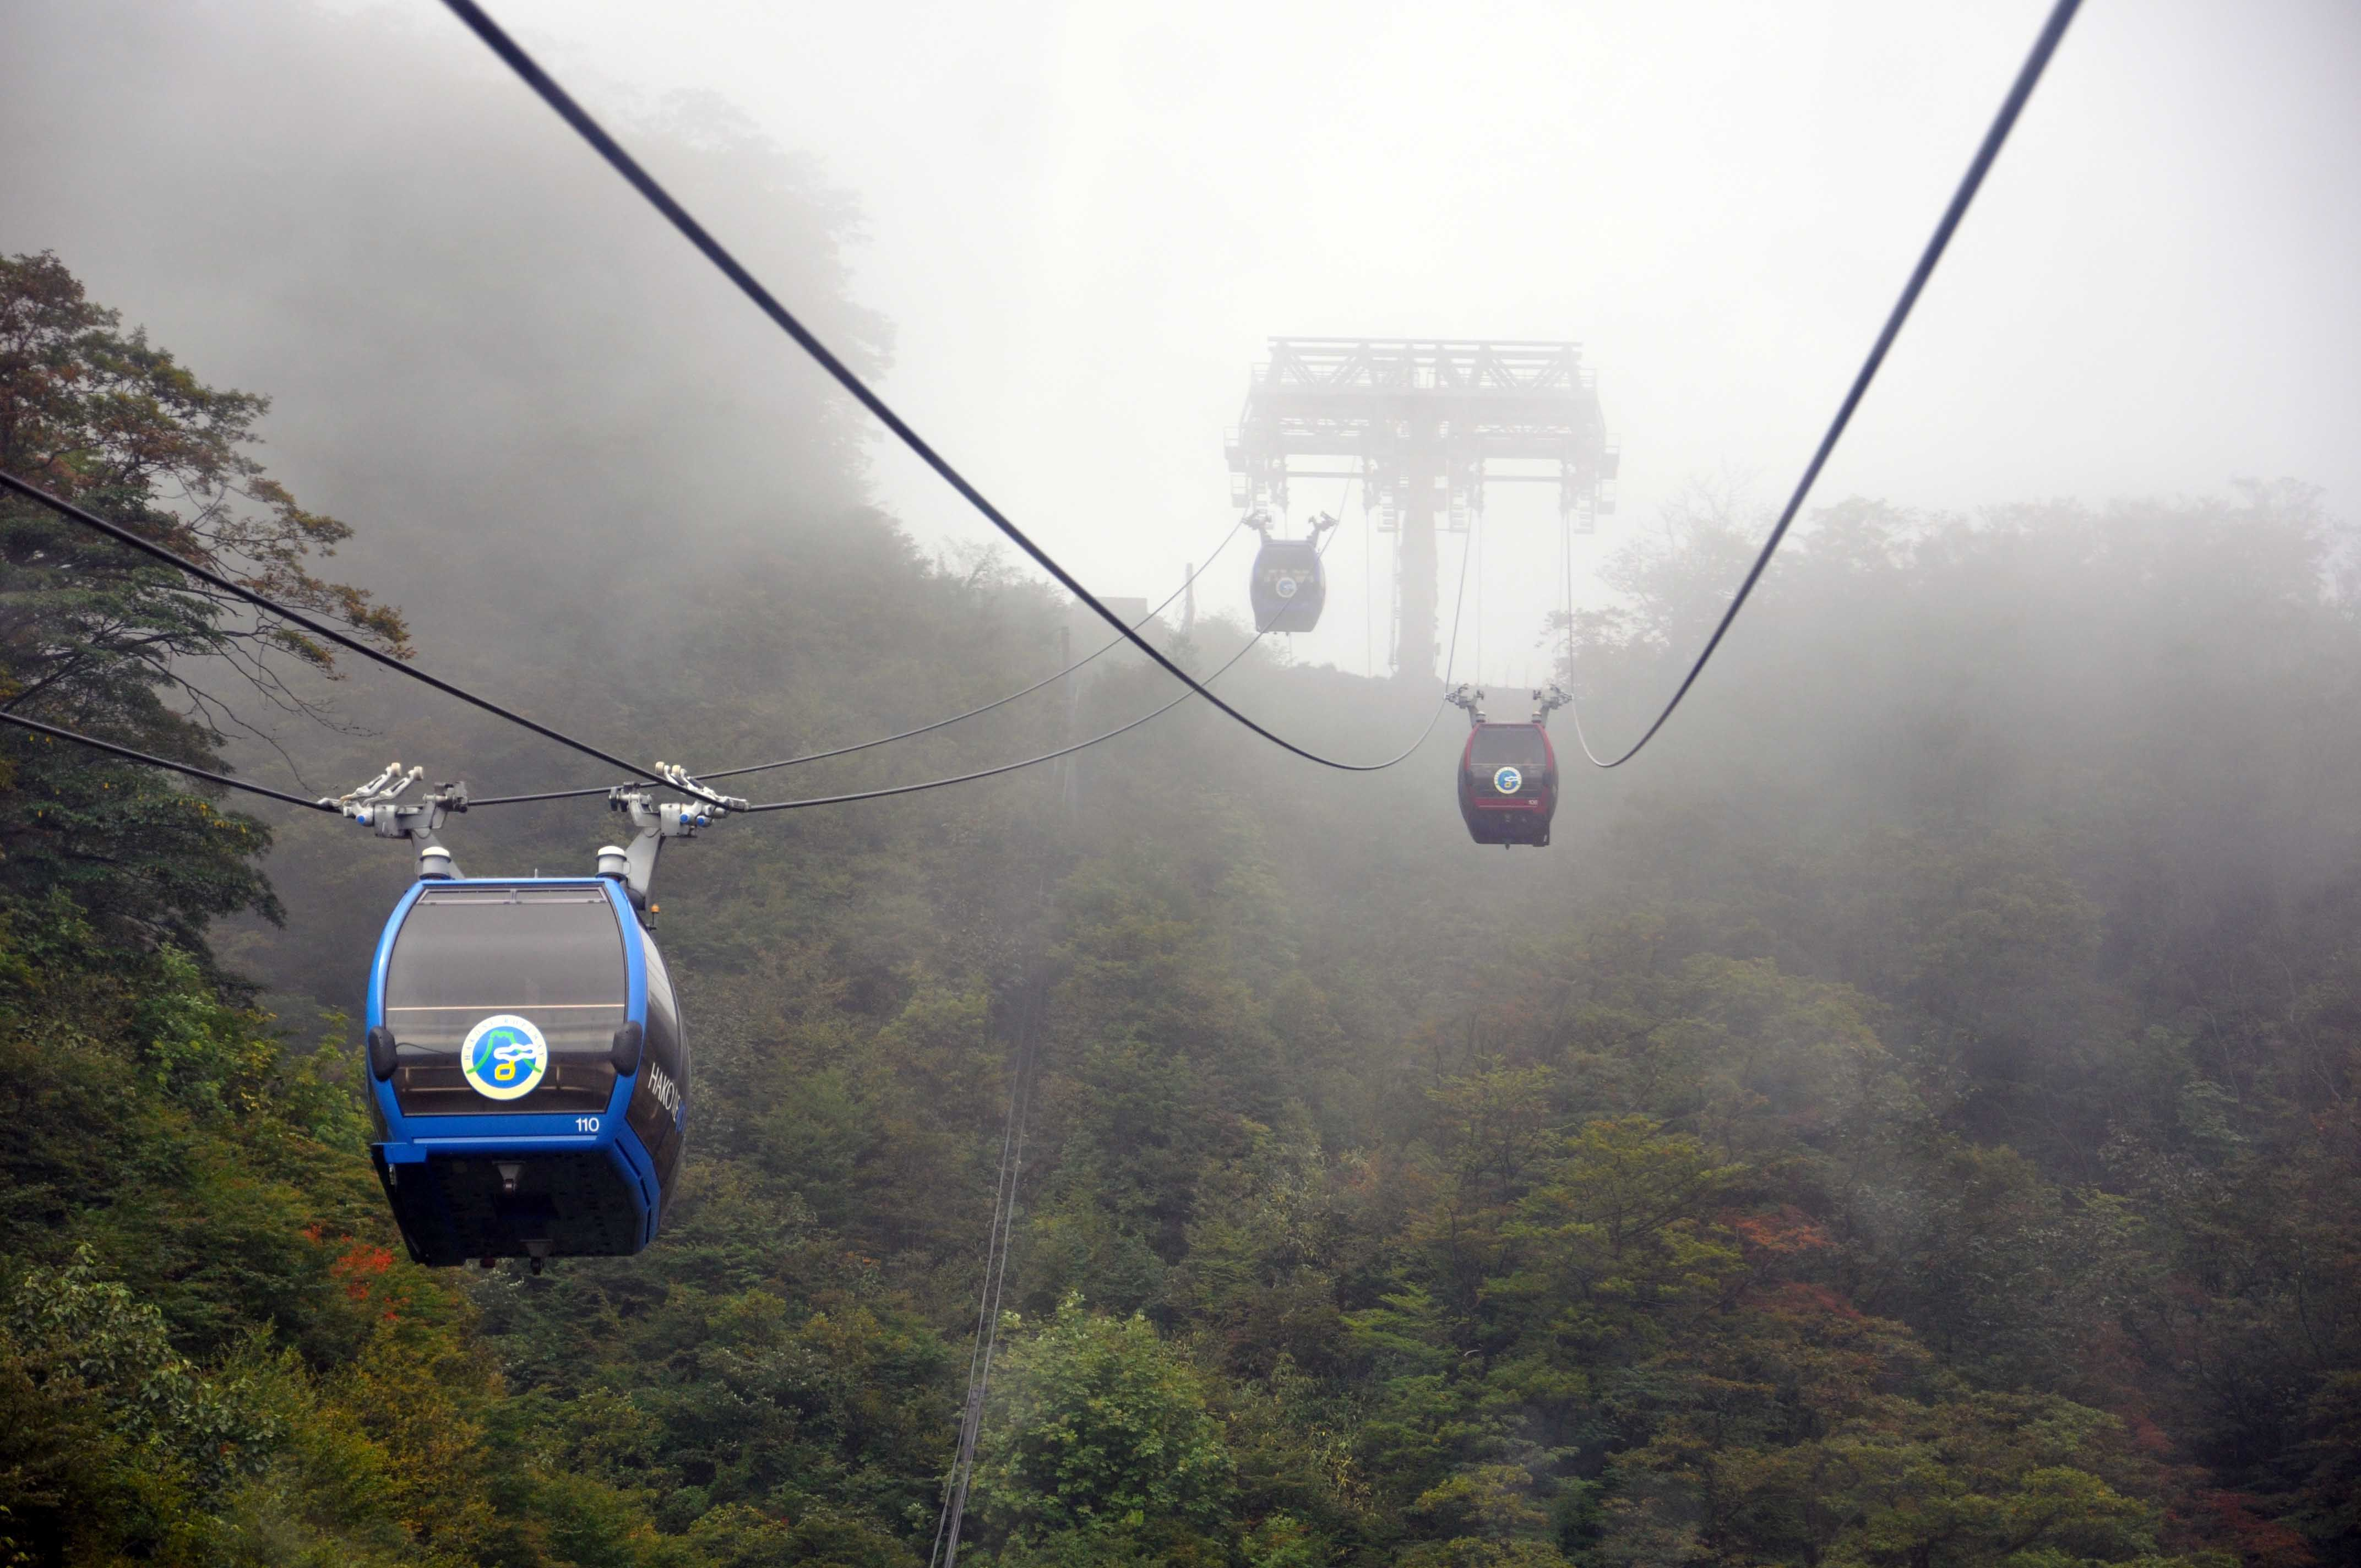 Hakone cable car - This is from an travel log of visiting the Hakone / Mt. Fuji area of Japan. There are more pctures to see!